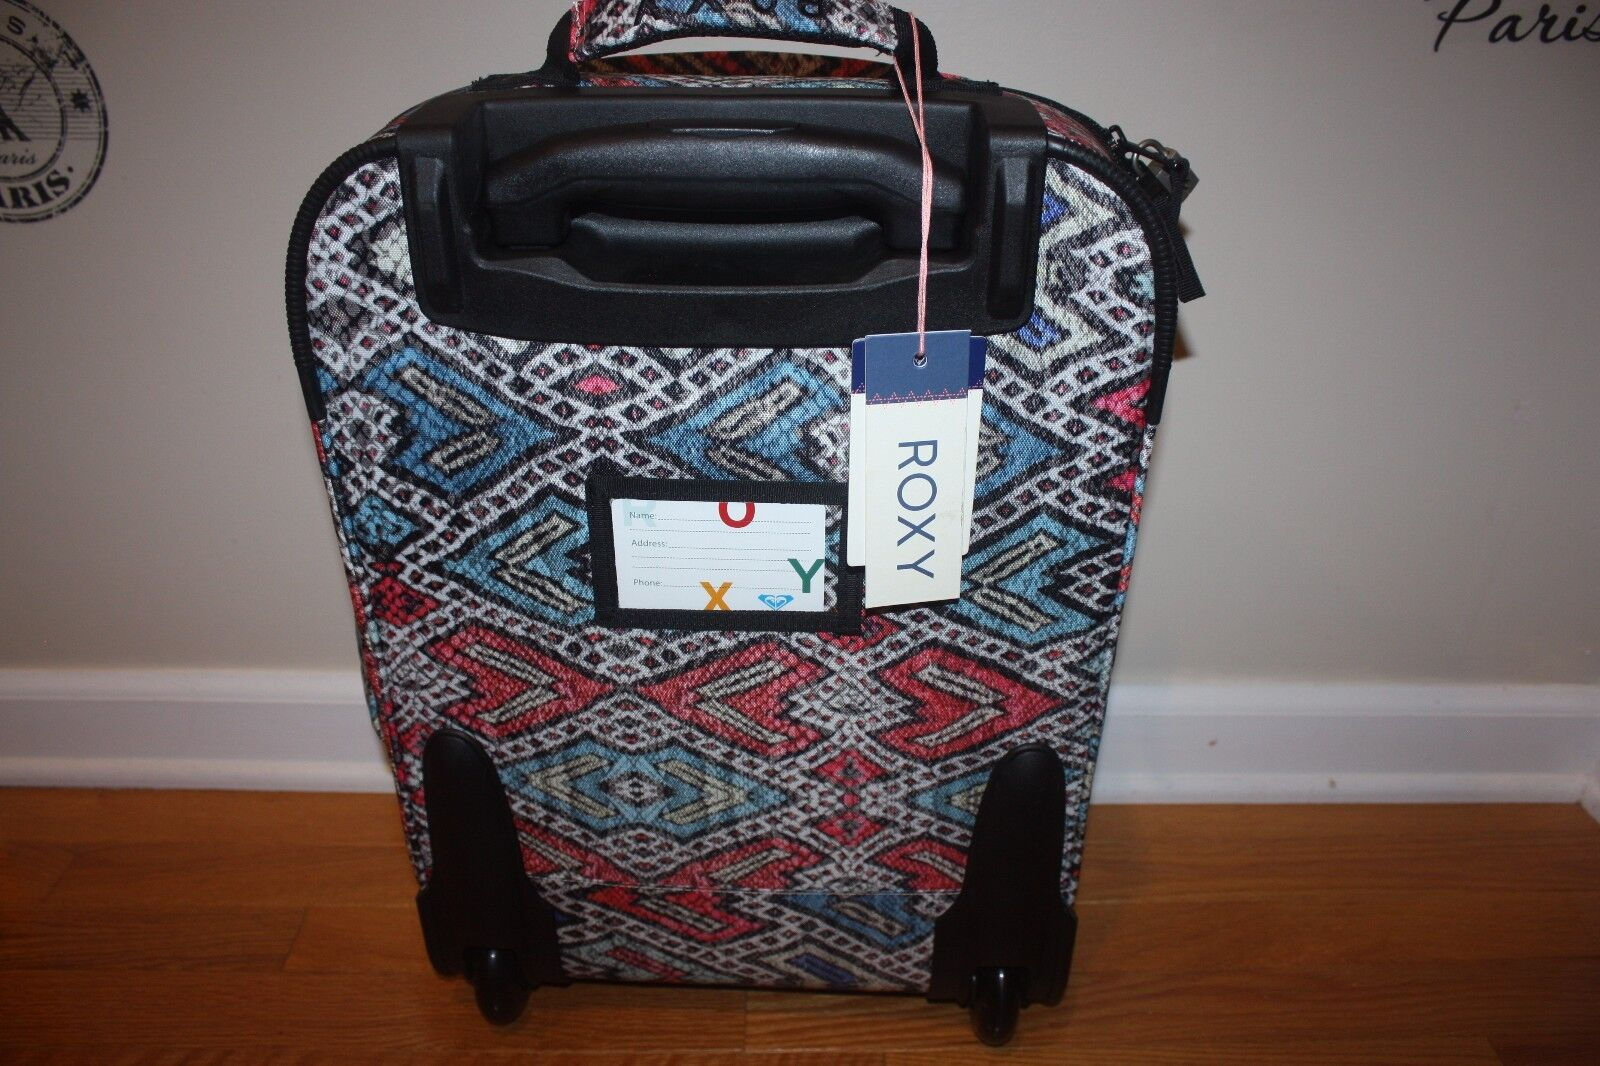 6a6d9198ed7e ROXY Women's Wheelie Carry-on Suitcase Regatta Soaring Eyes